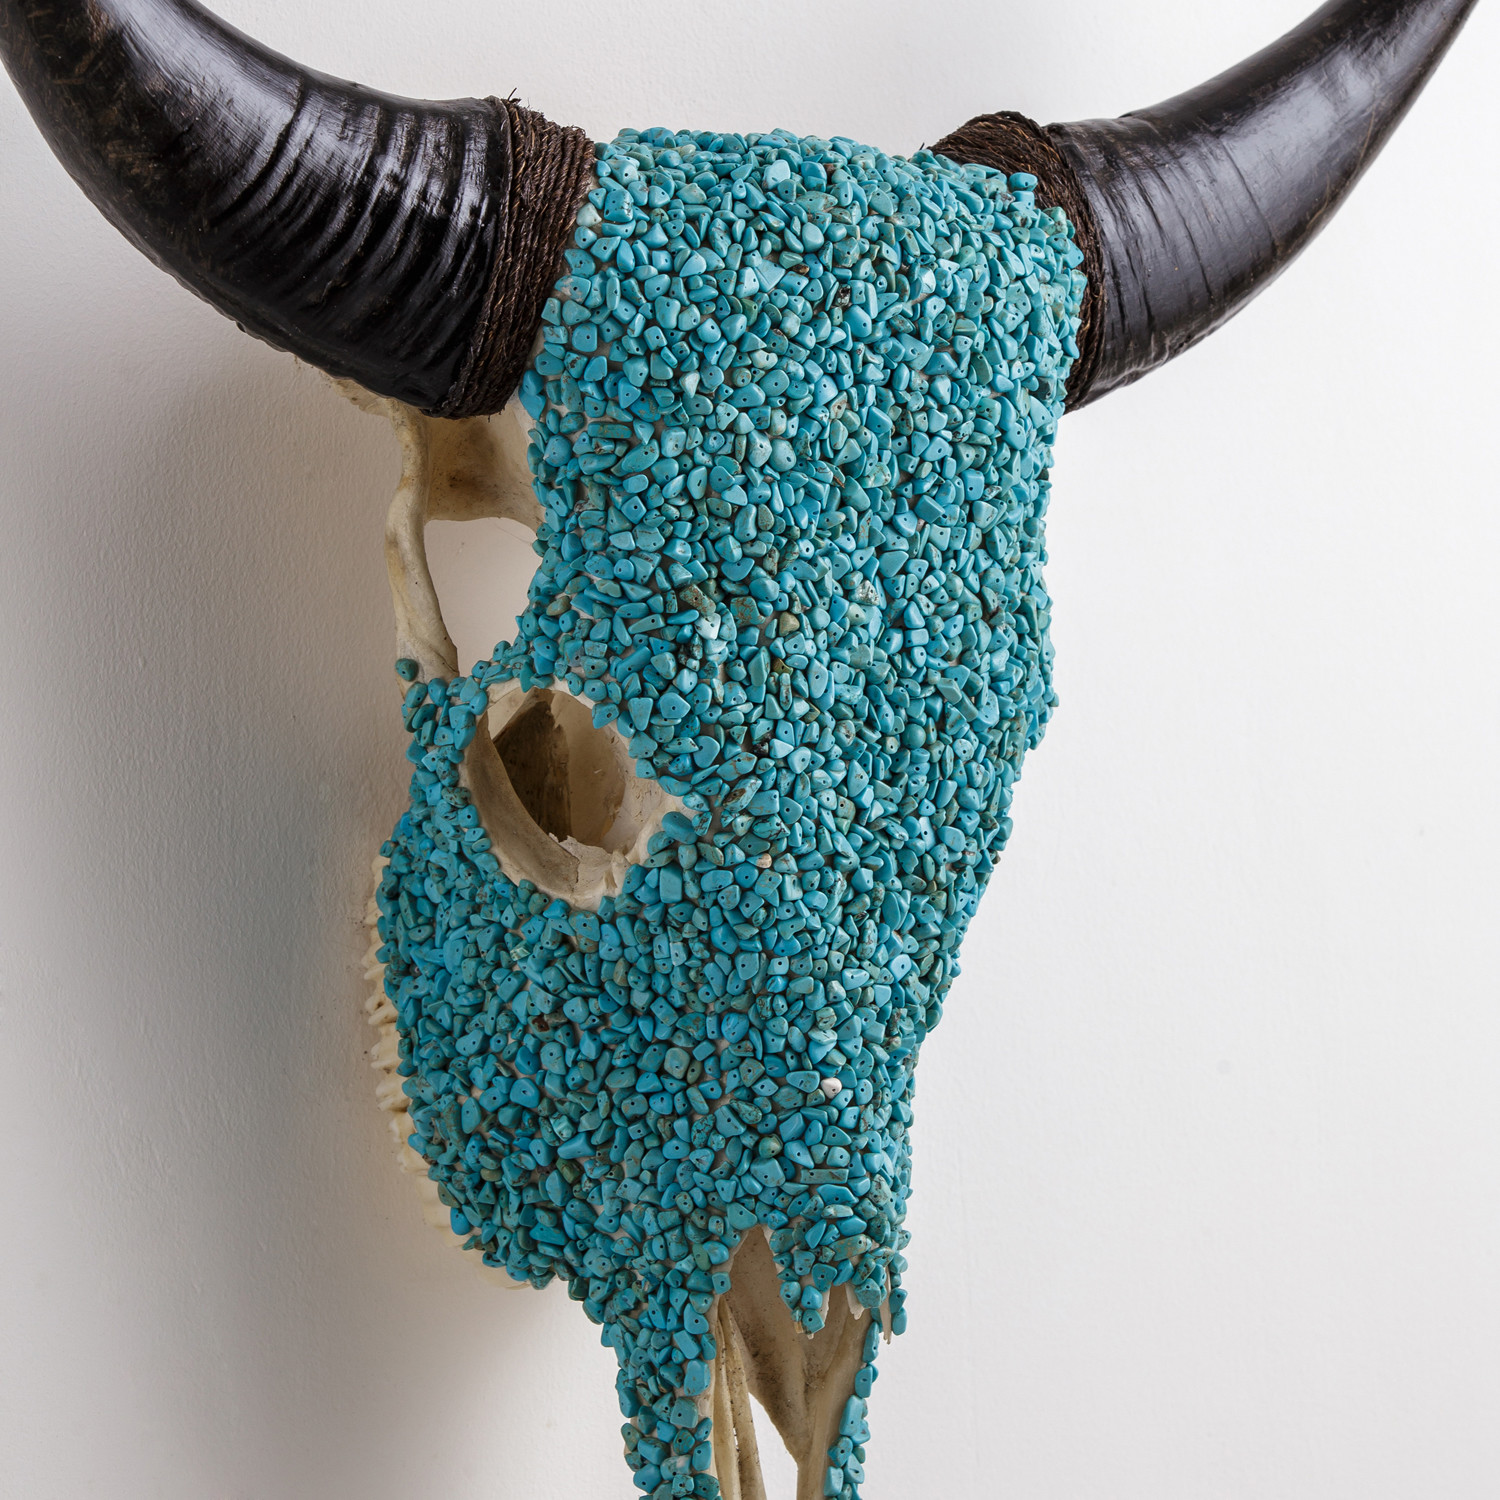 Decorated Cow Skull // XL Horns // Turquoise Meets White - Skull